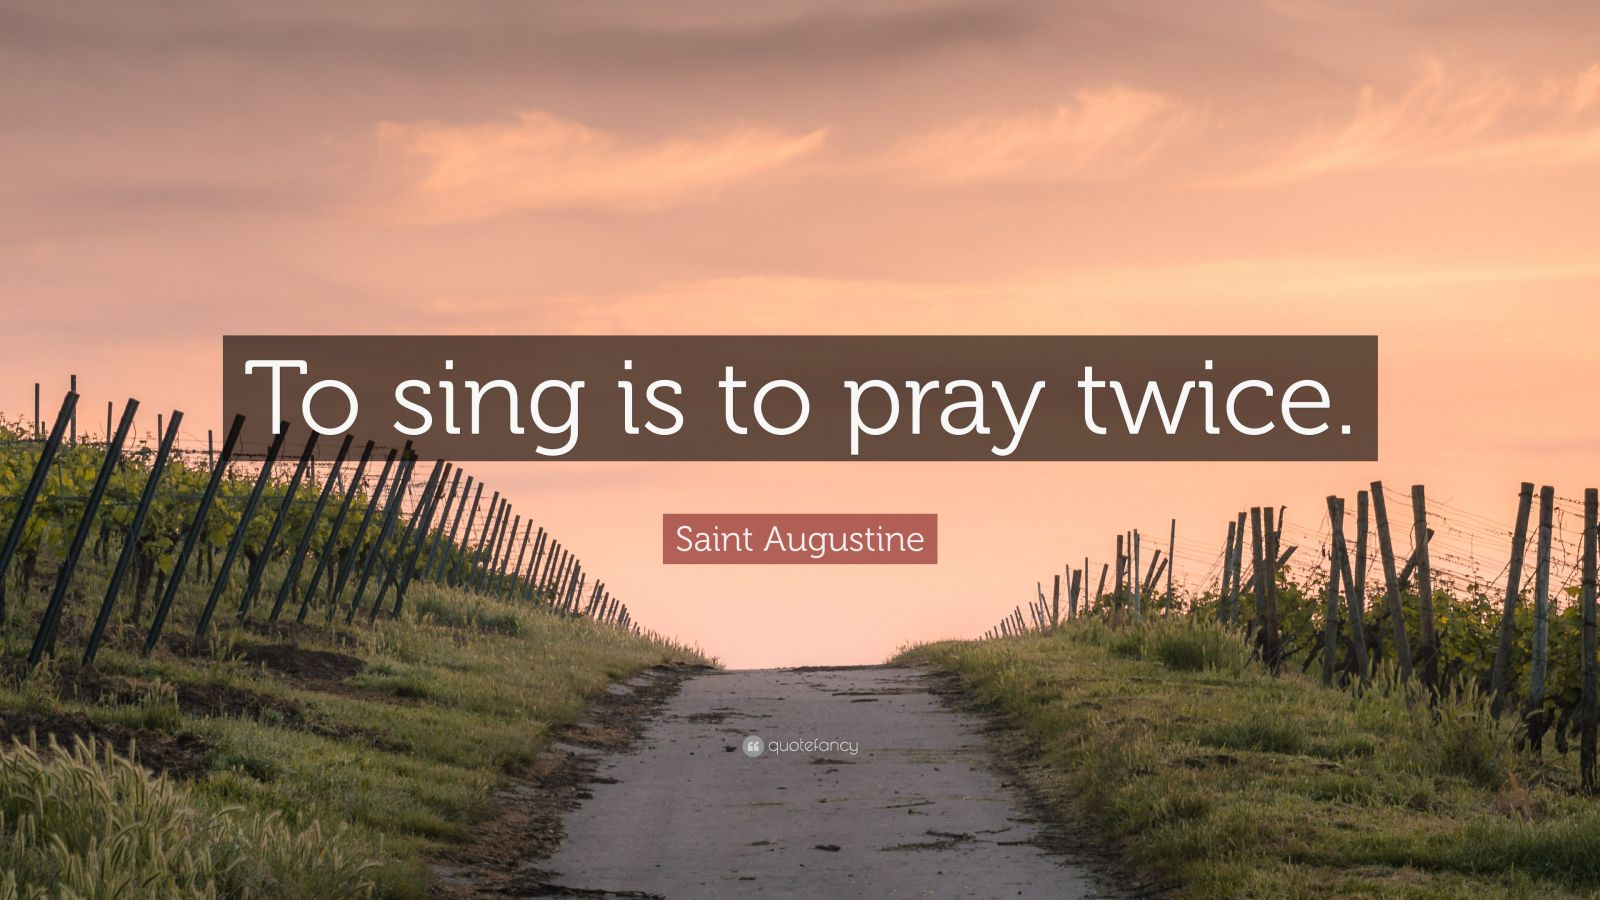 Motivational Quotes Wallpaper 1920x1080 Saint Augustine Quote To Sing Is To Pray Twice 12